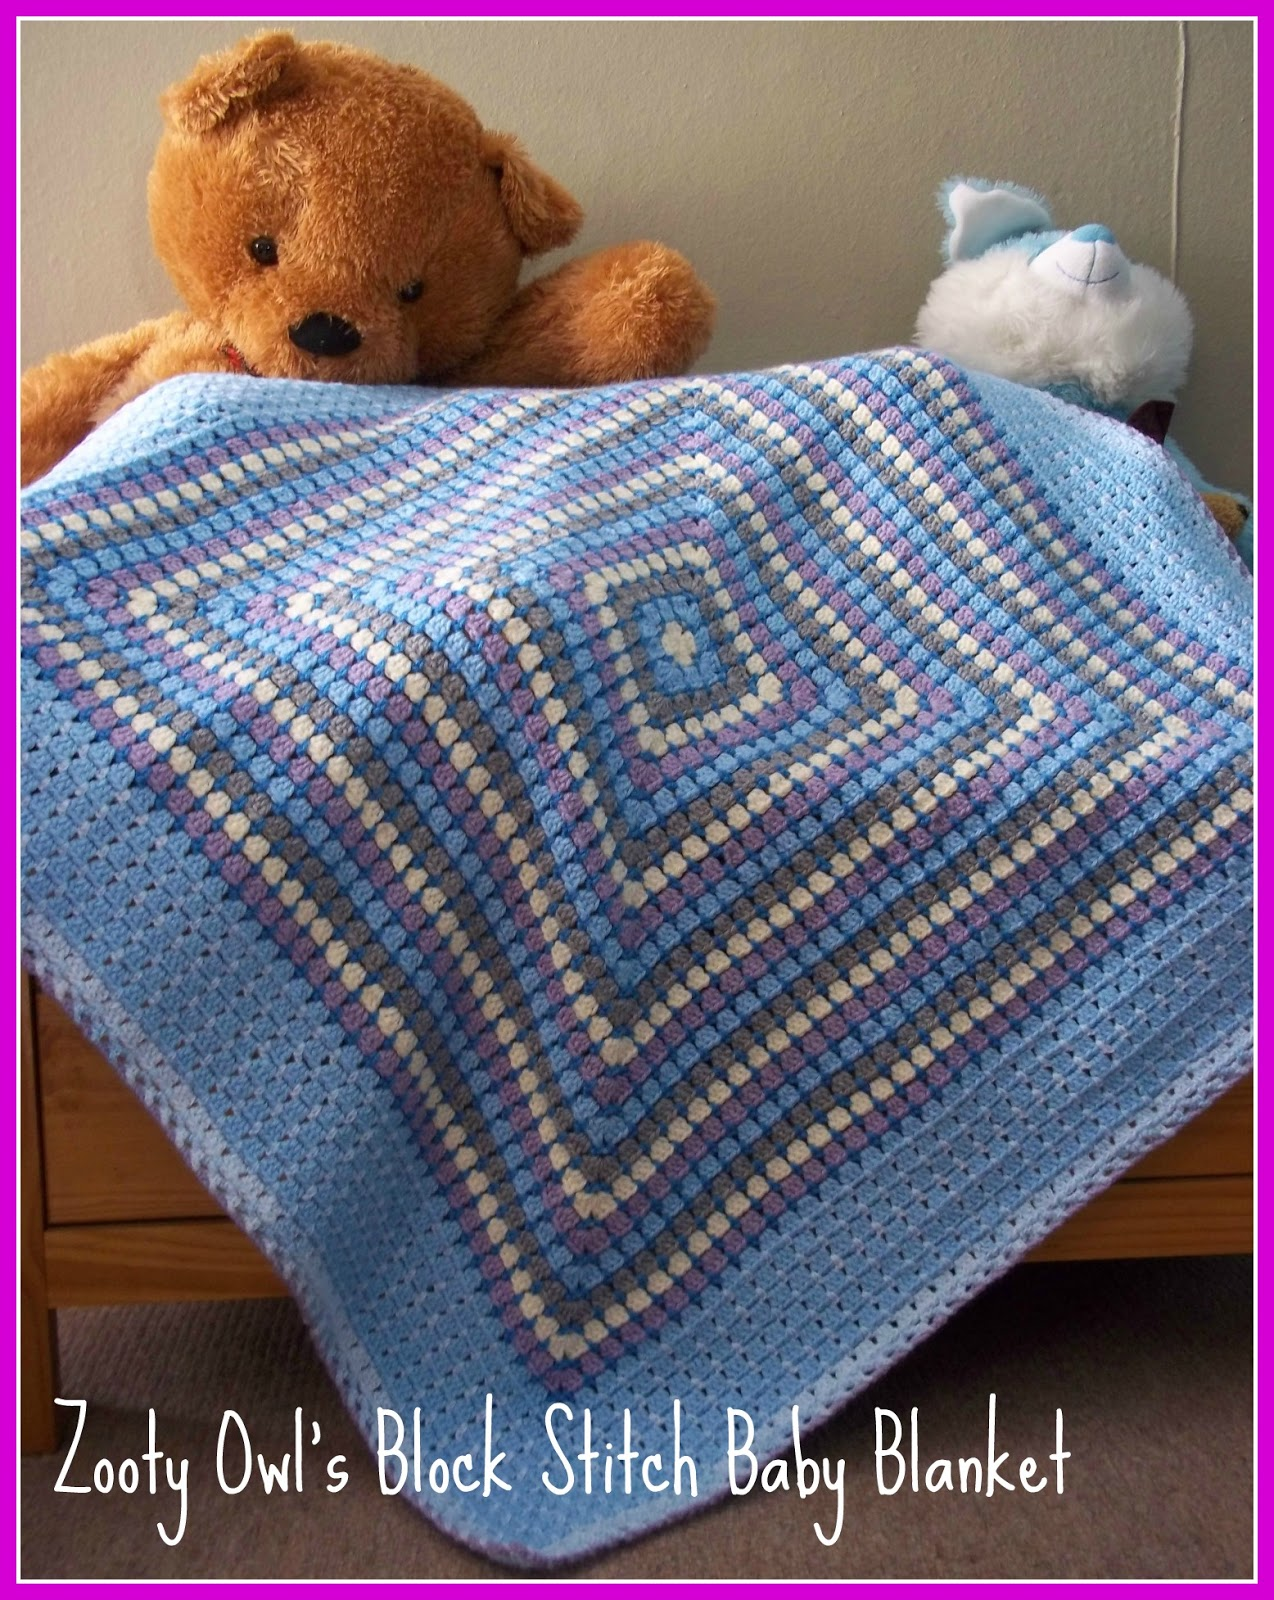 Zooty Owl\'s Crafty Blog: Block Stitch Baby Blanket